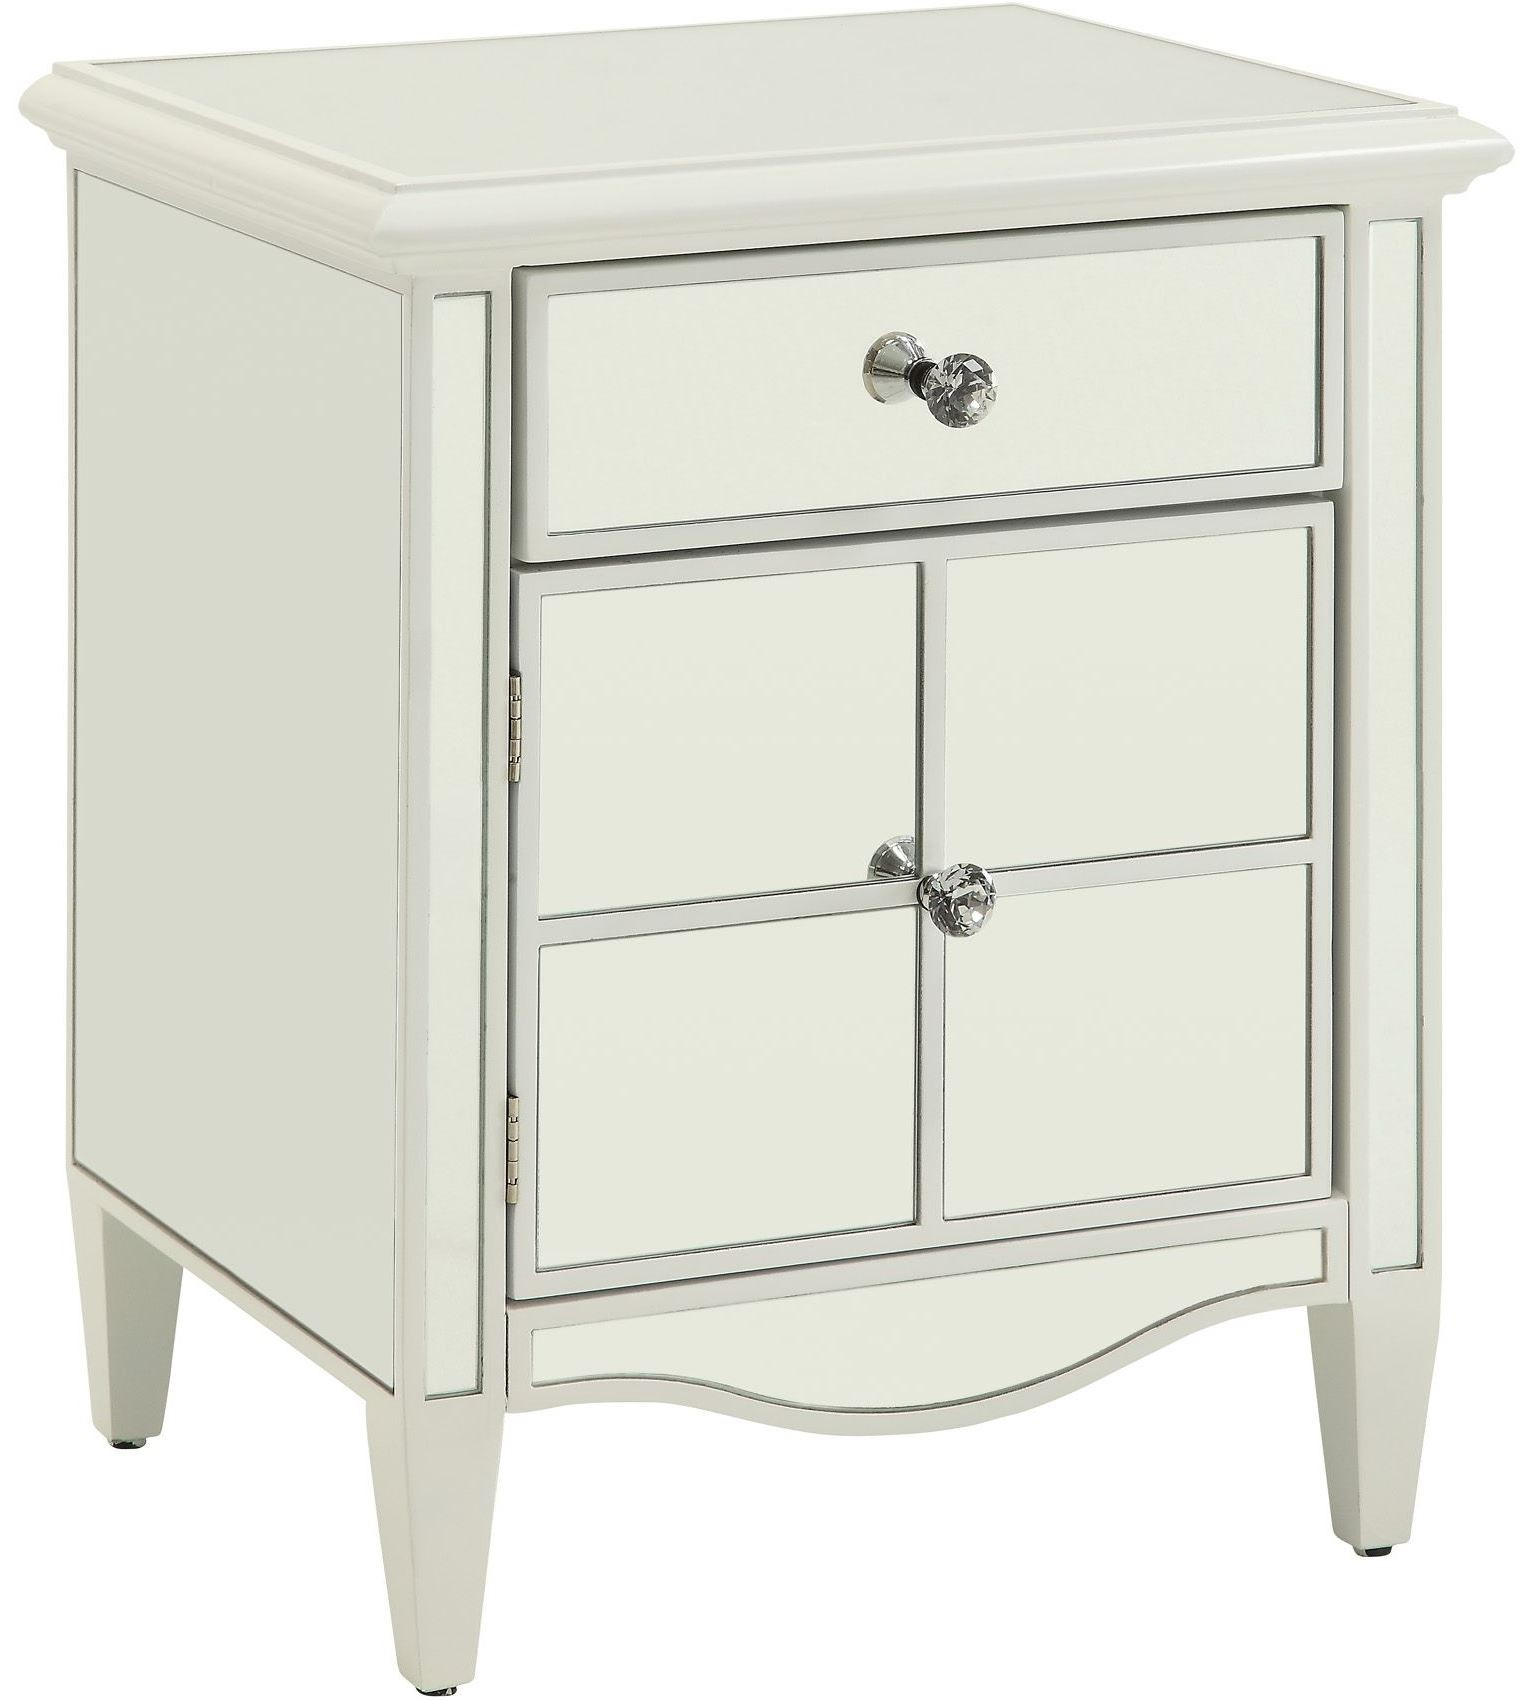 Luciana white 20 5 mirrored cabinet 4682wt sm homelegance for White mirrored cabinet